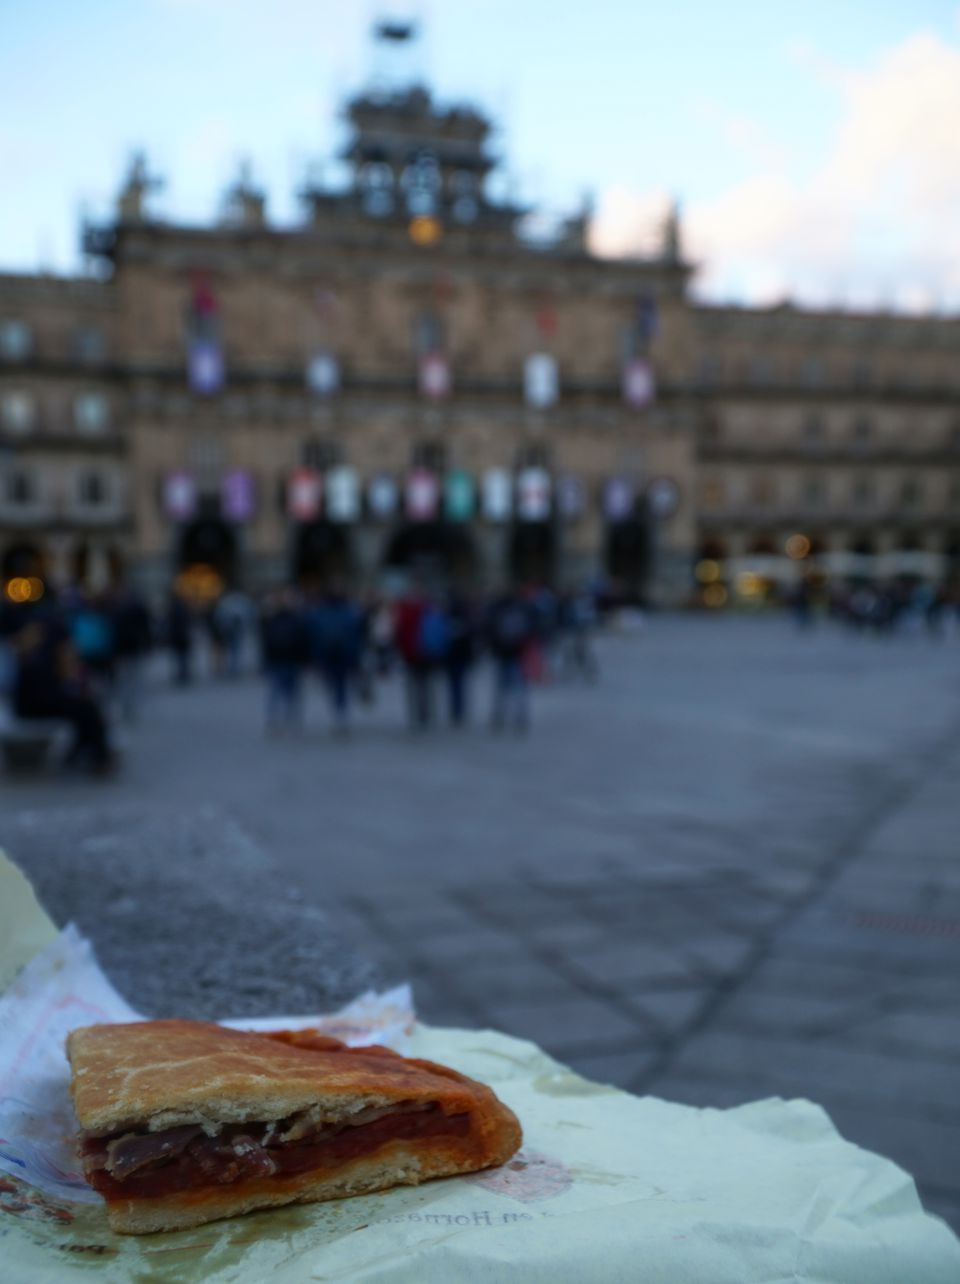 Hornazo chorizo and ham pastry, in Plaza Mayor in Salamanca